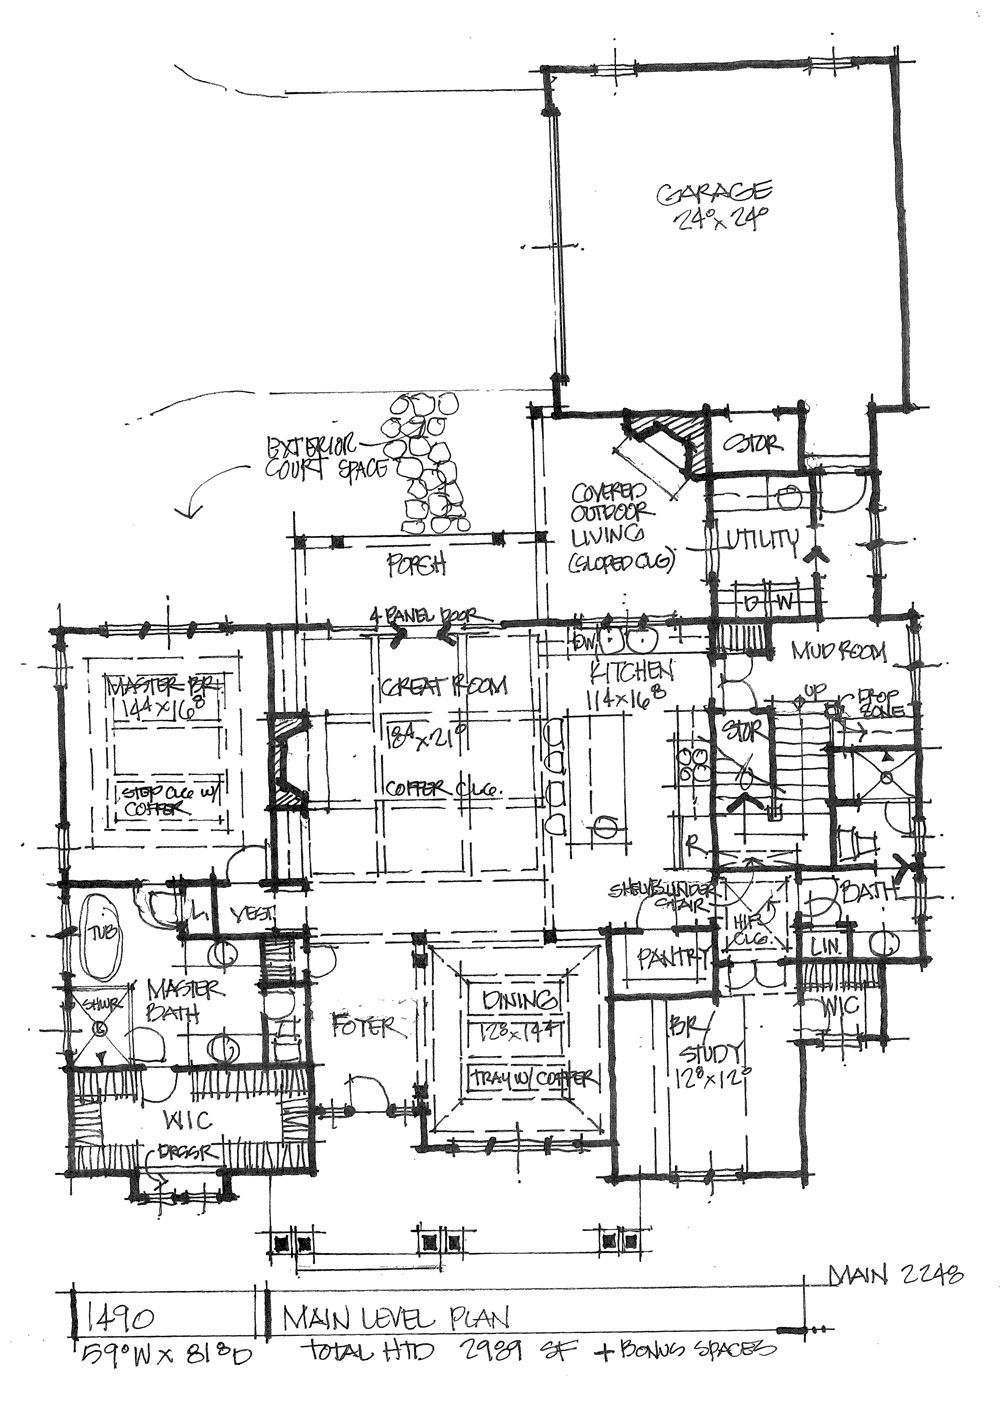 House Plan 1490 Rear Courtyard Garage Garage House Plans Garage Floor Plans Craftsman Floor Plans